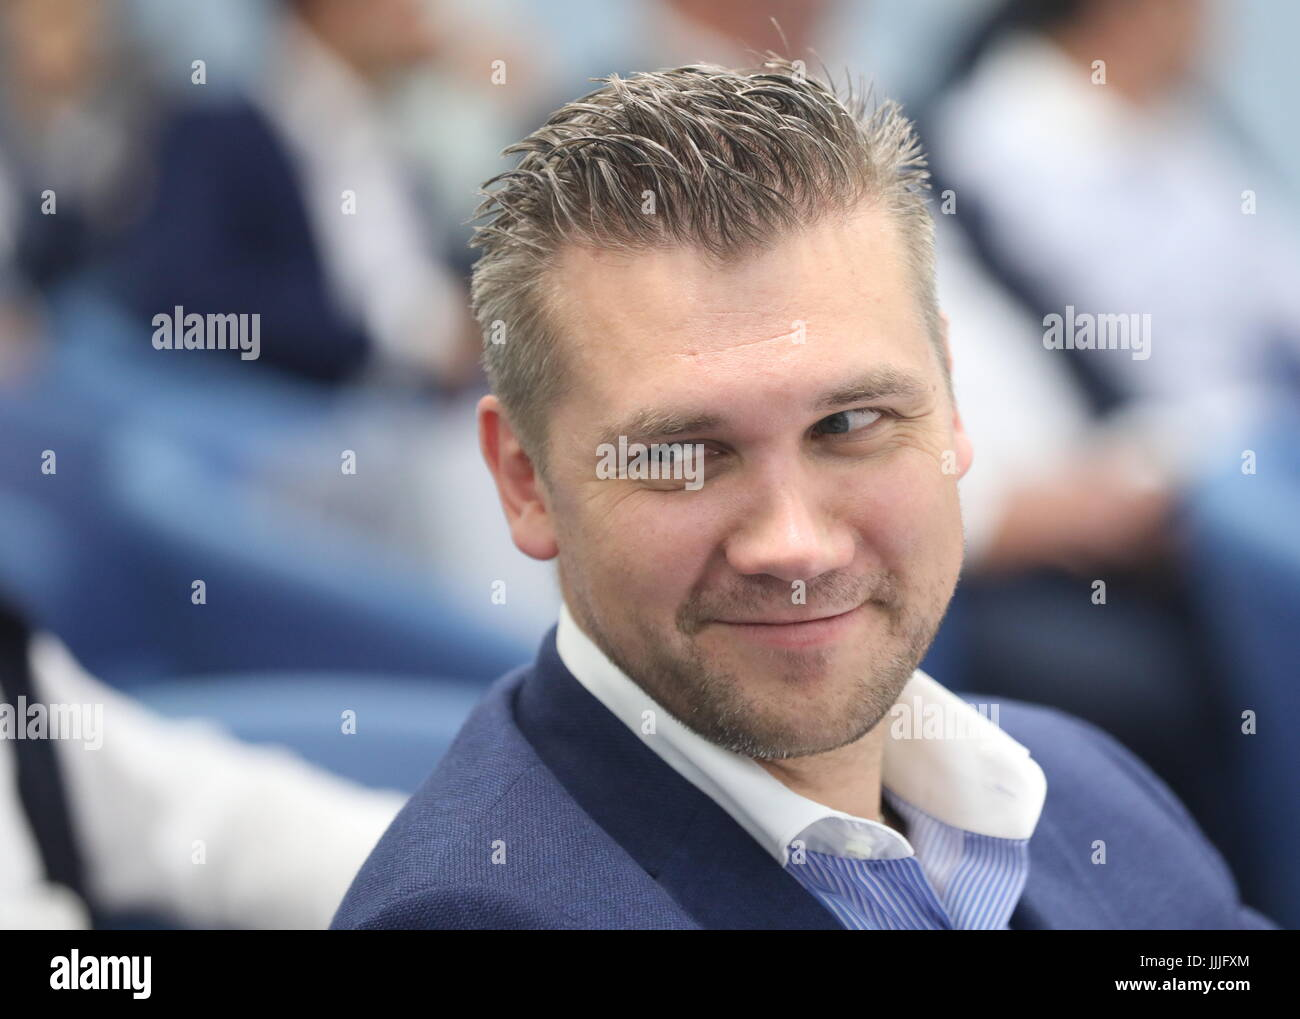 Moscow, Russia. 20th July, 2017. Russia's Deputy Culture Minister Sergei Obryvalin during a presentational event - Stock Image